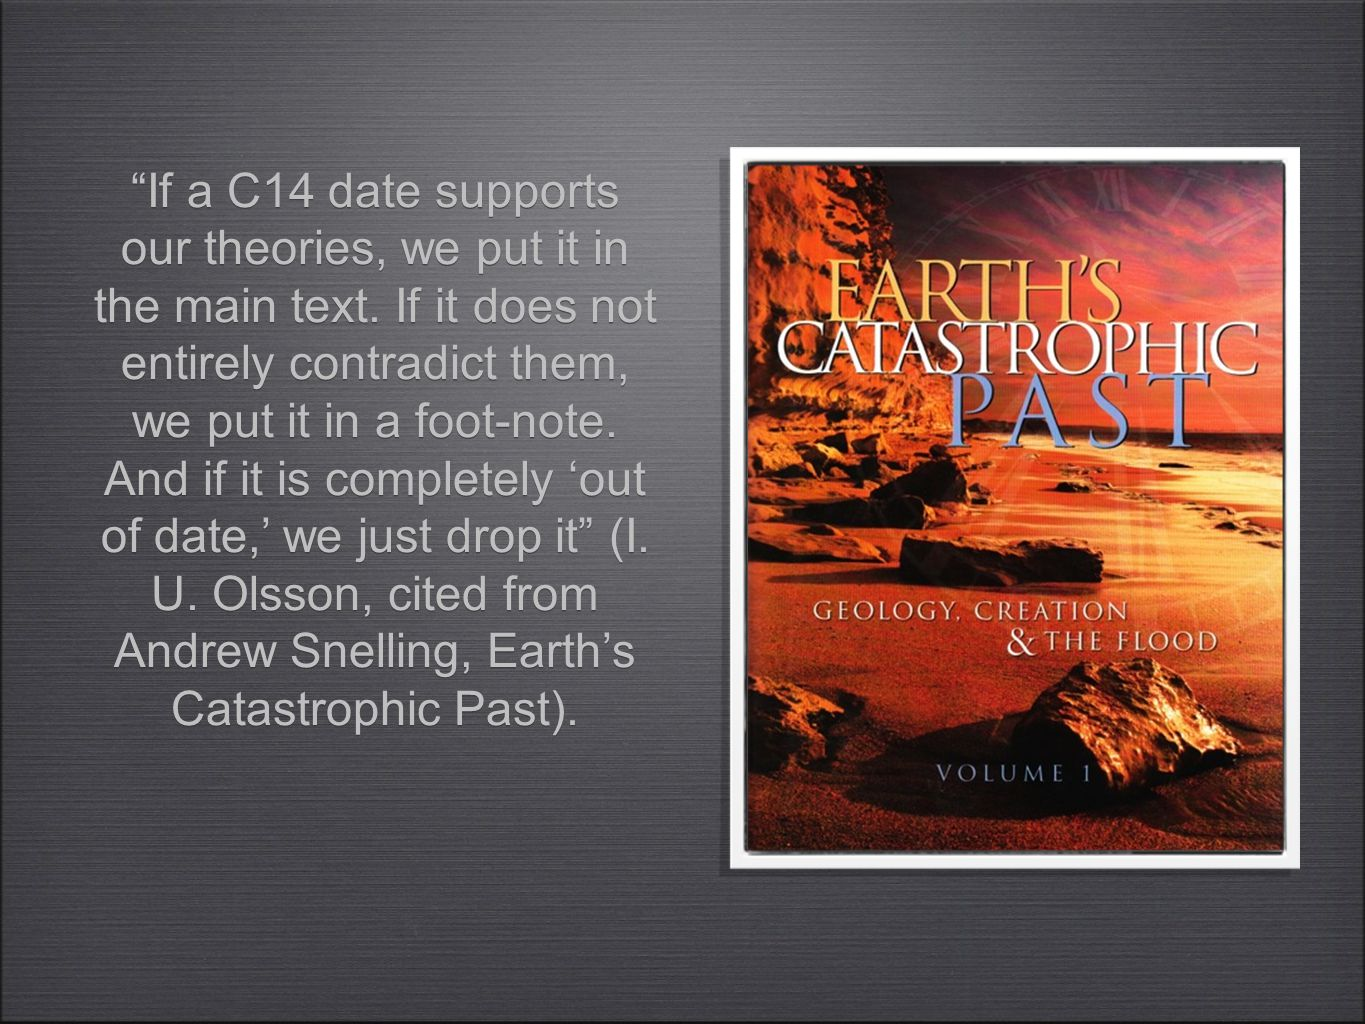 If a C14 date supports our theories, we put it in the main text.